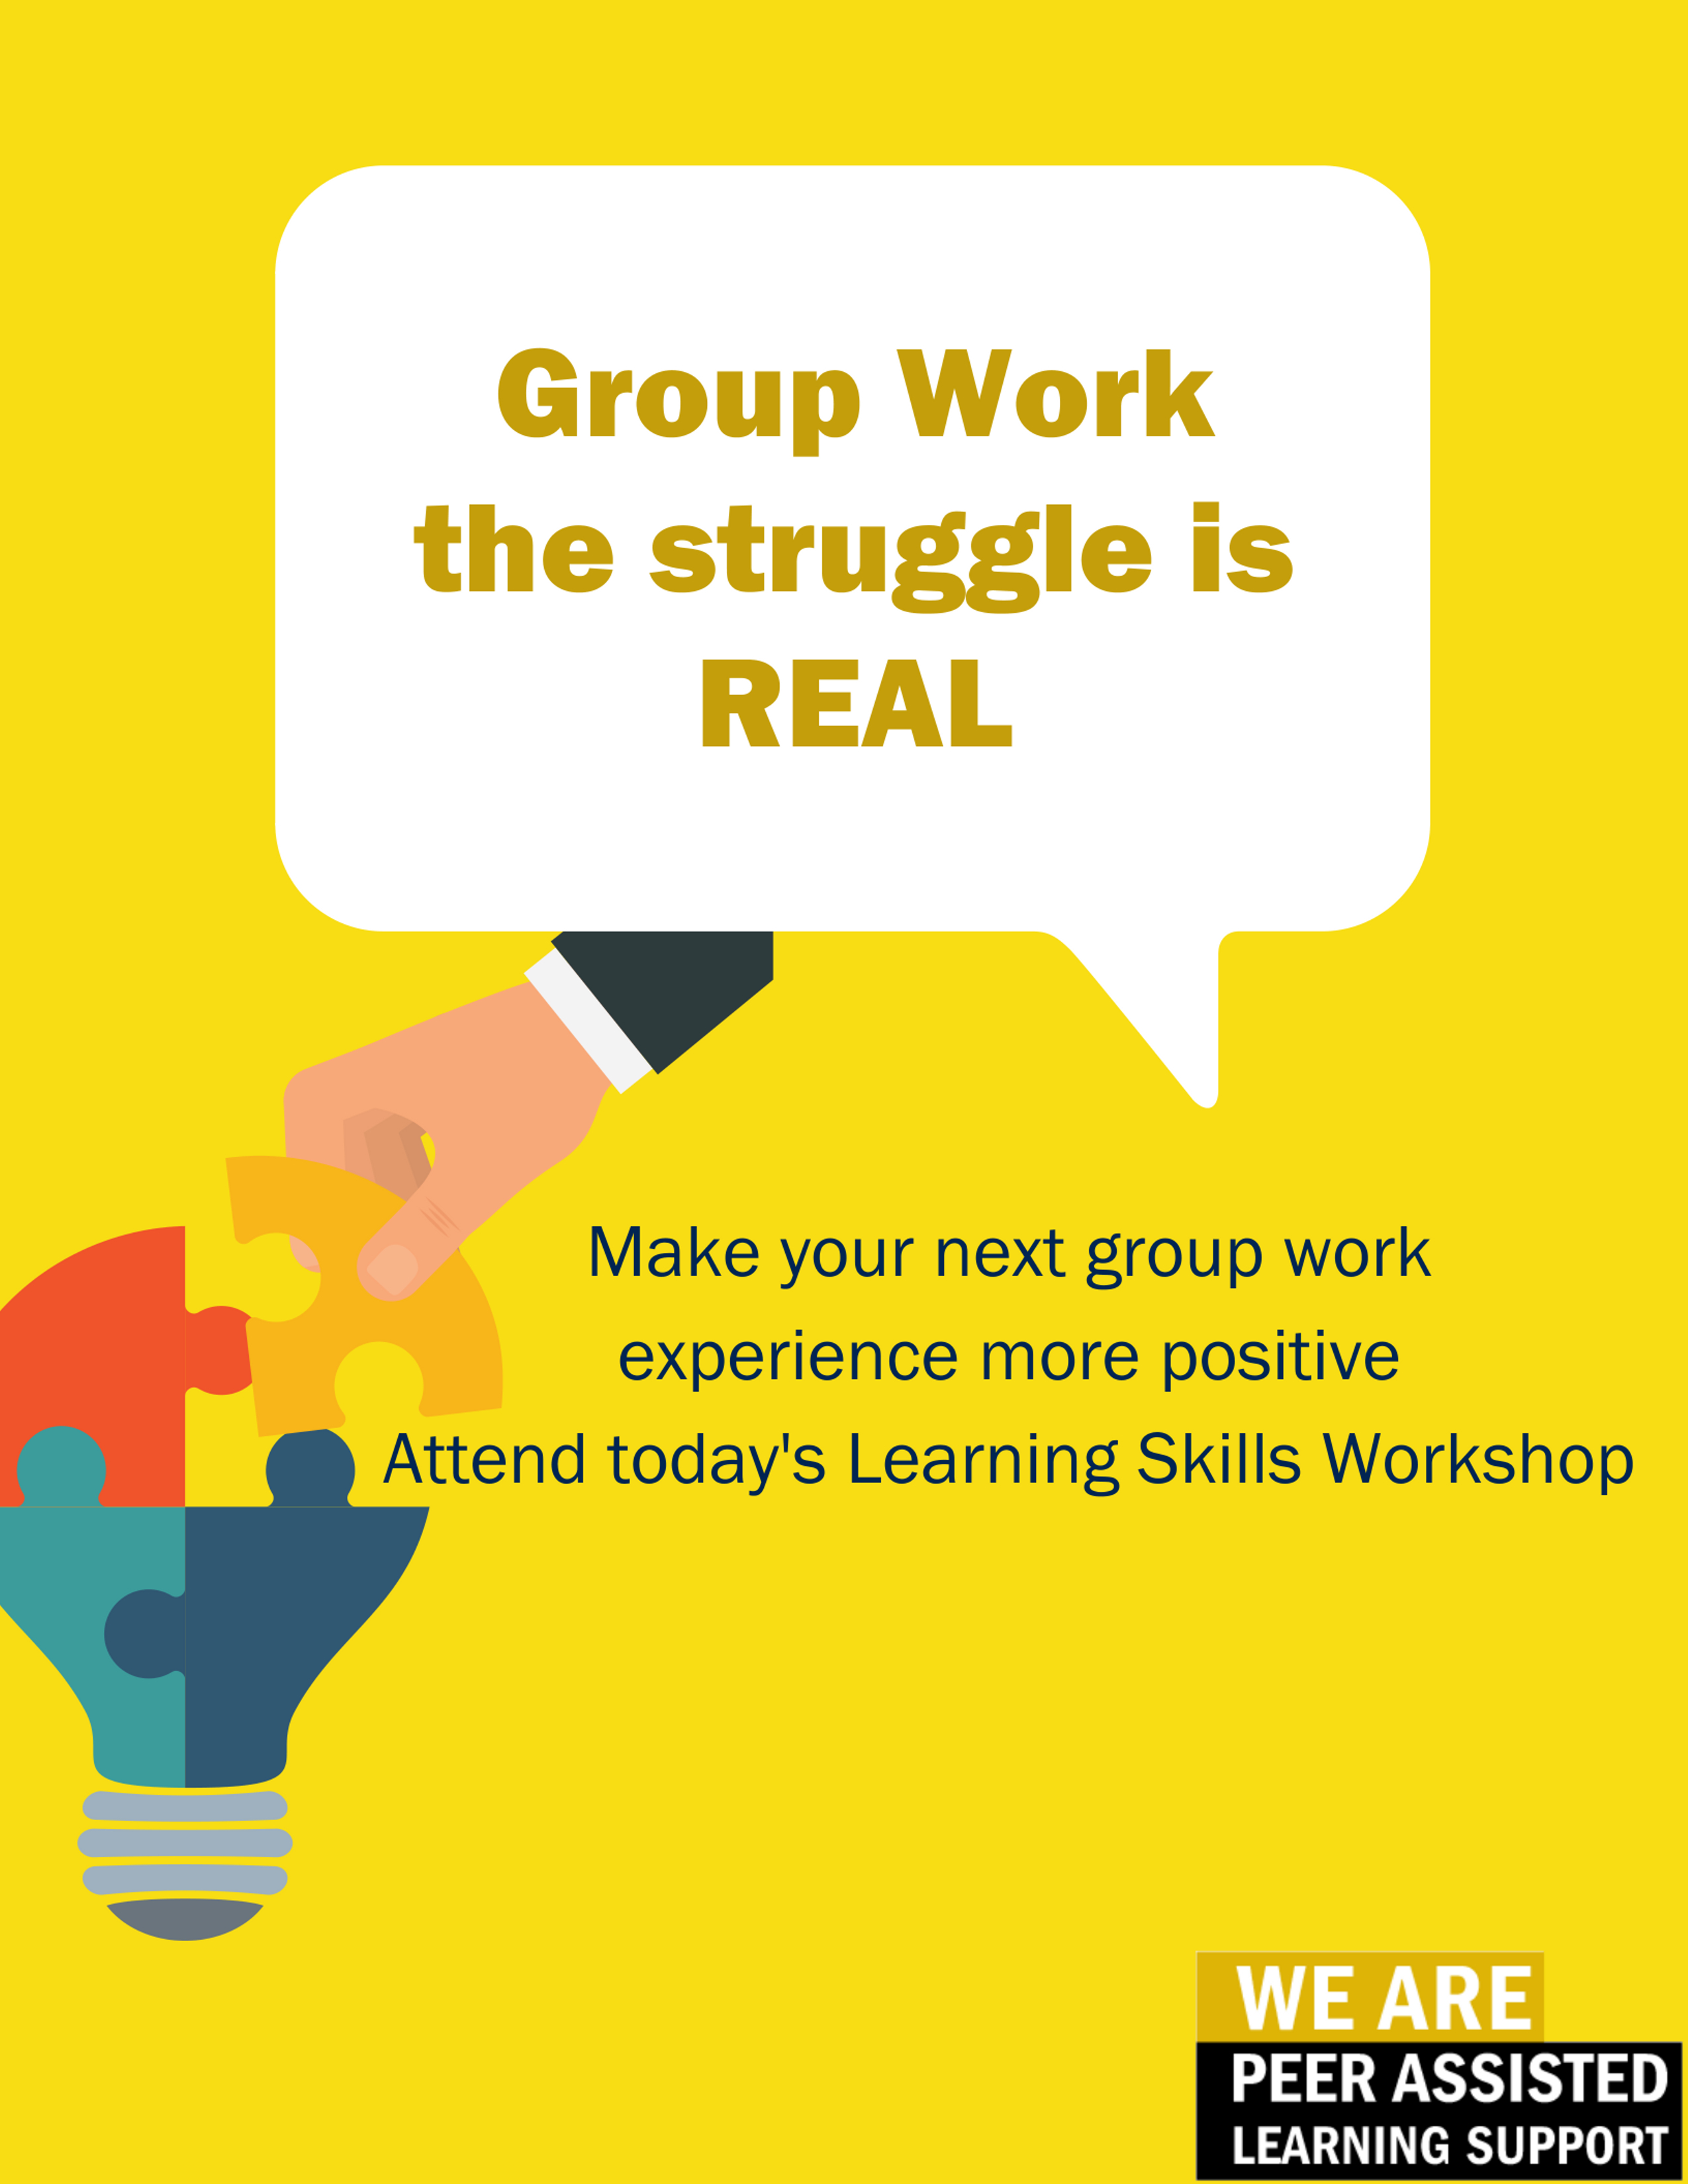 Hate group work? Discover ways to make your next group work a more positive experience.